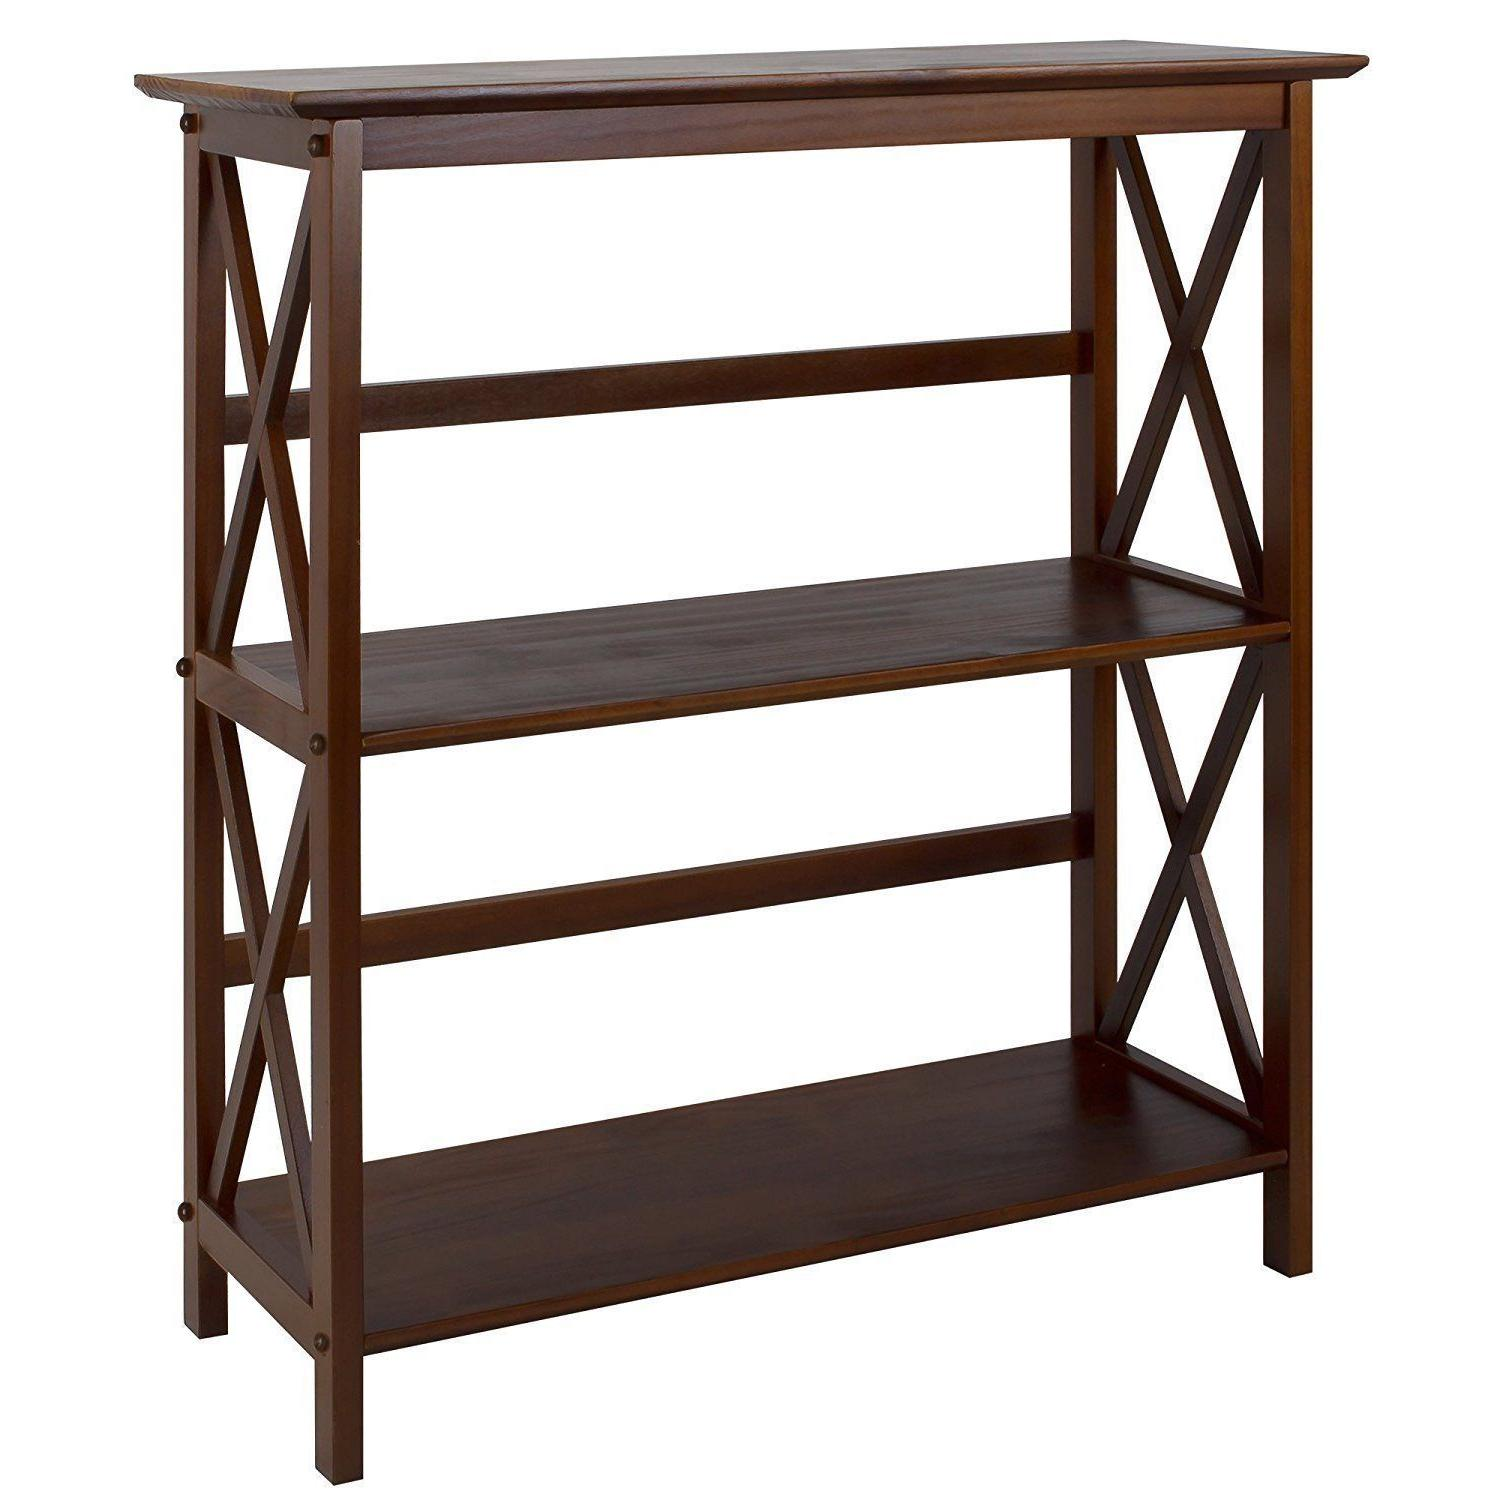 Console Table For Entryway Walnut Hall Bookshelf Entry Sofa